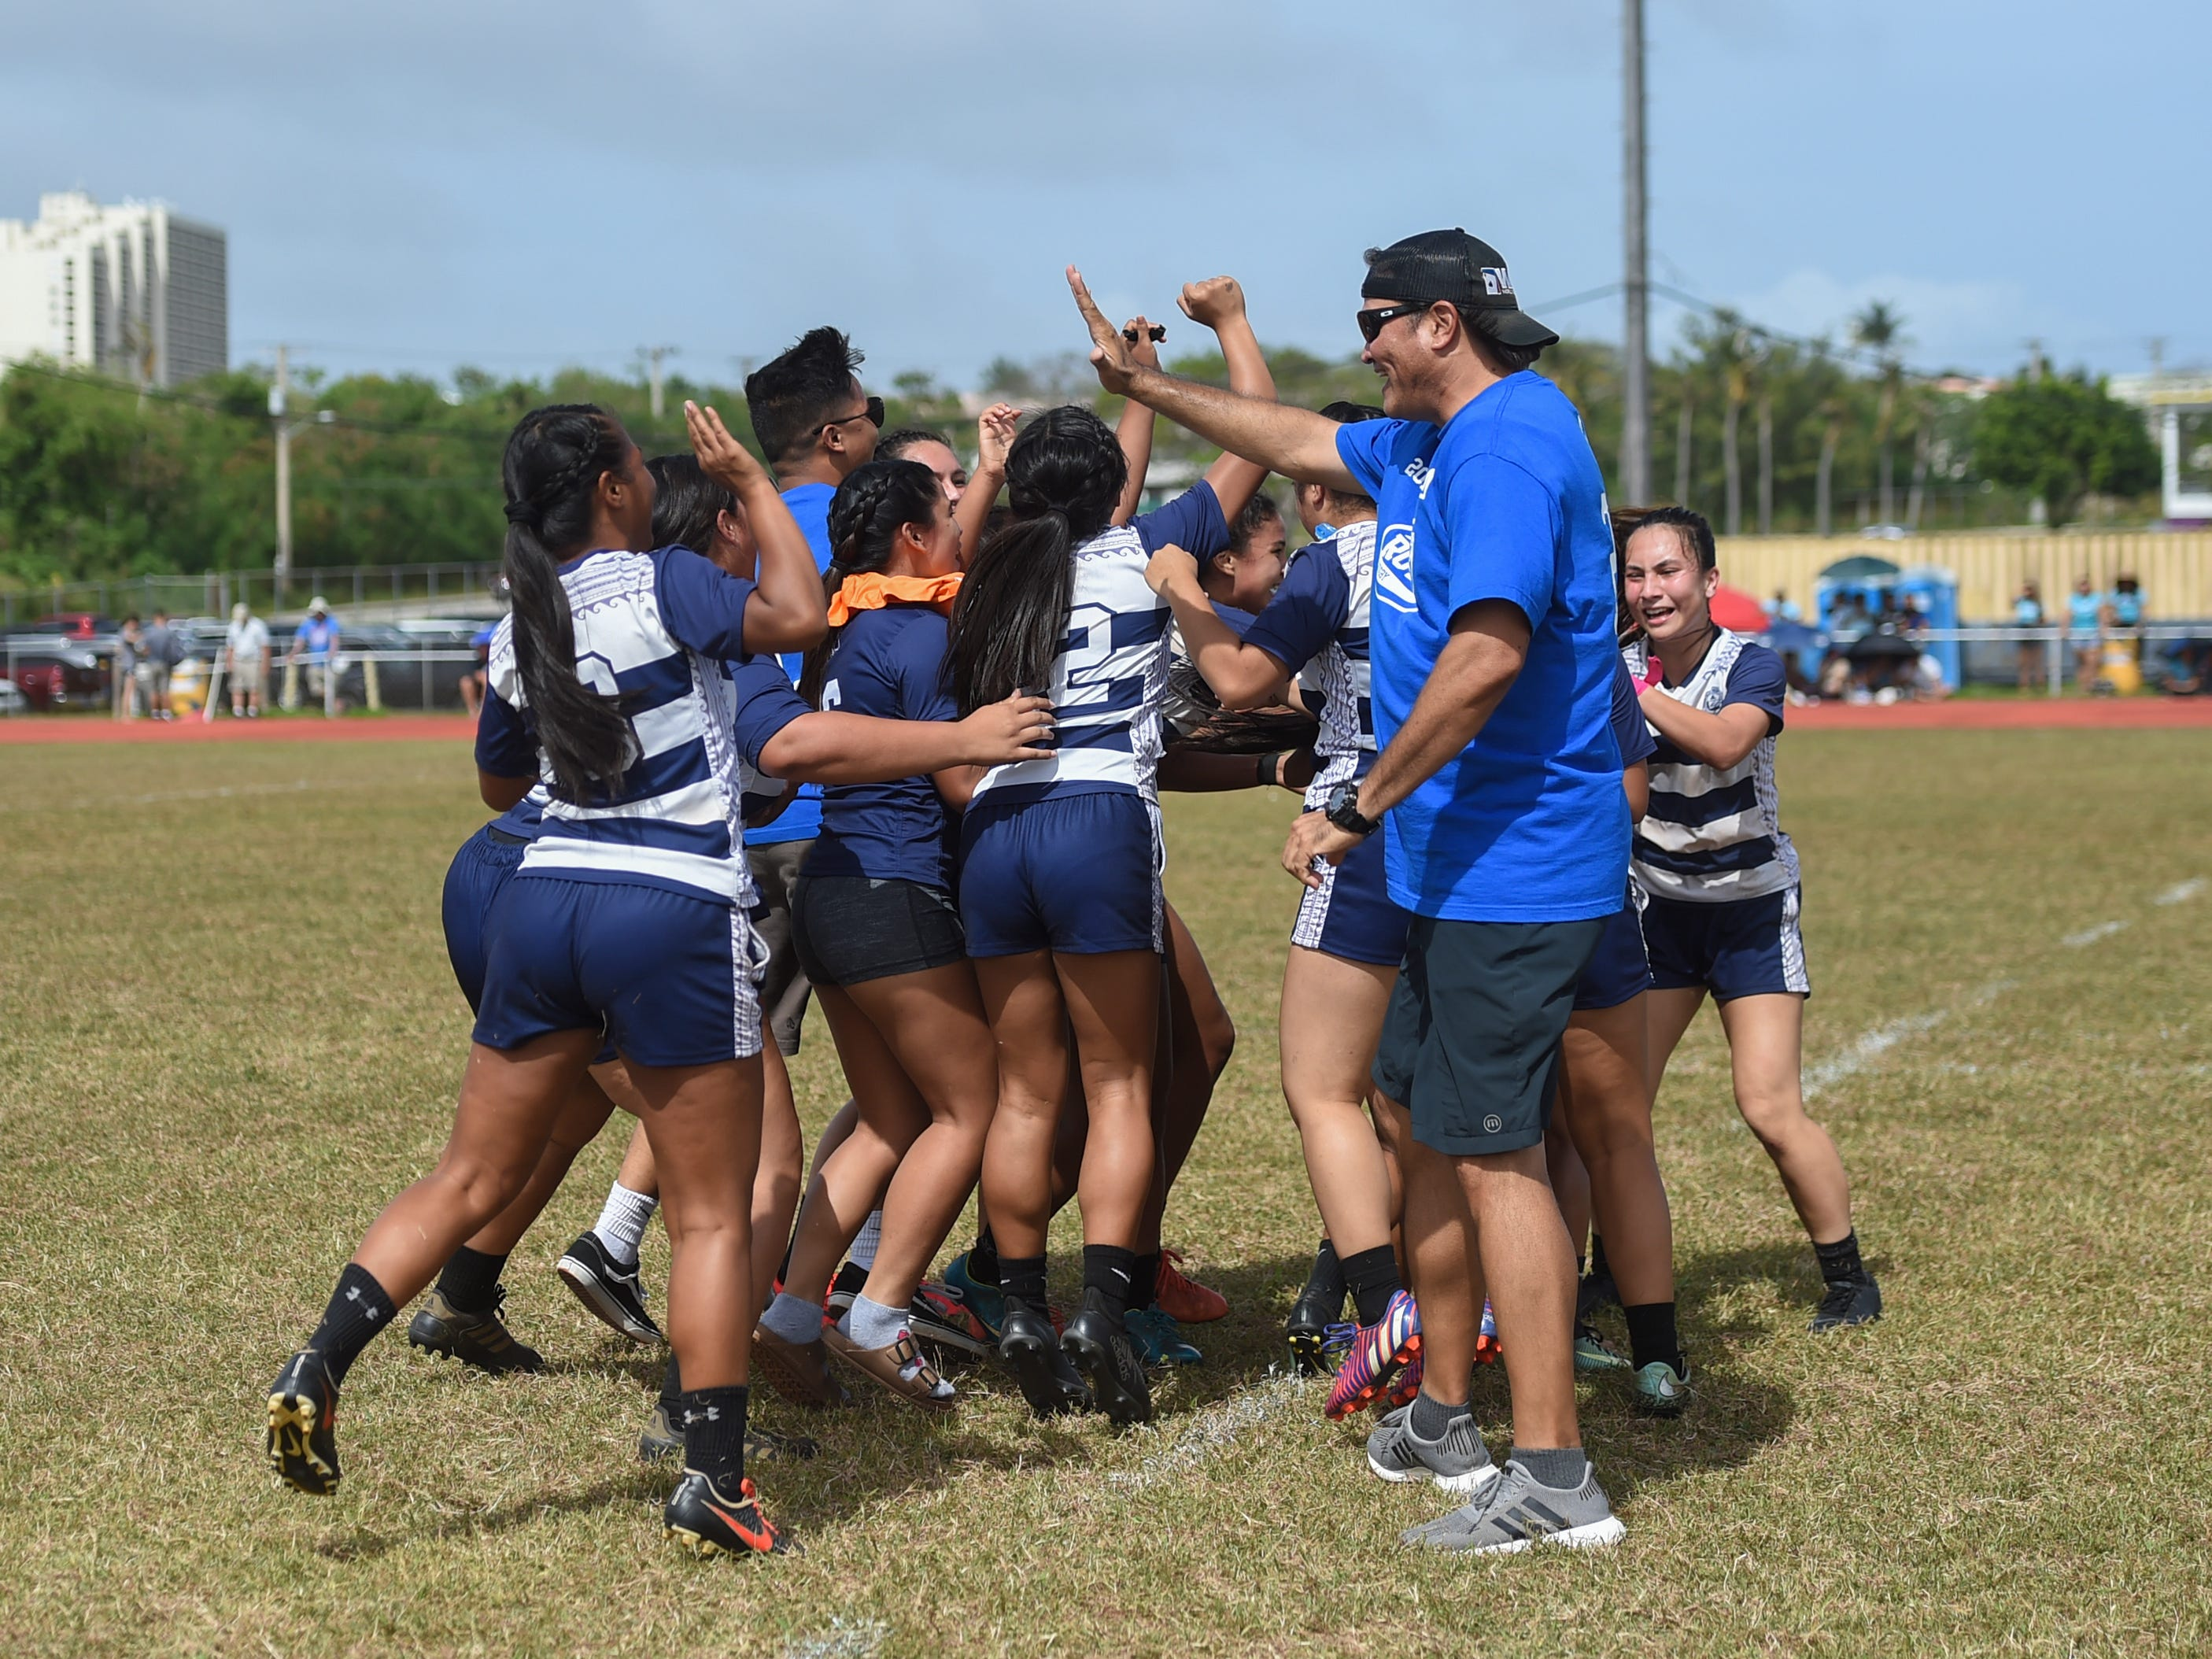 The Notre Dame Royals celebrate their 21-17 win in the GRFU/IIAAG Girls Rugby Finals against the George Washington Geckos at the GW High School Field in Mangilao, March 16, 2019.